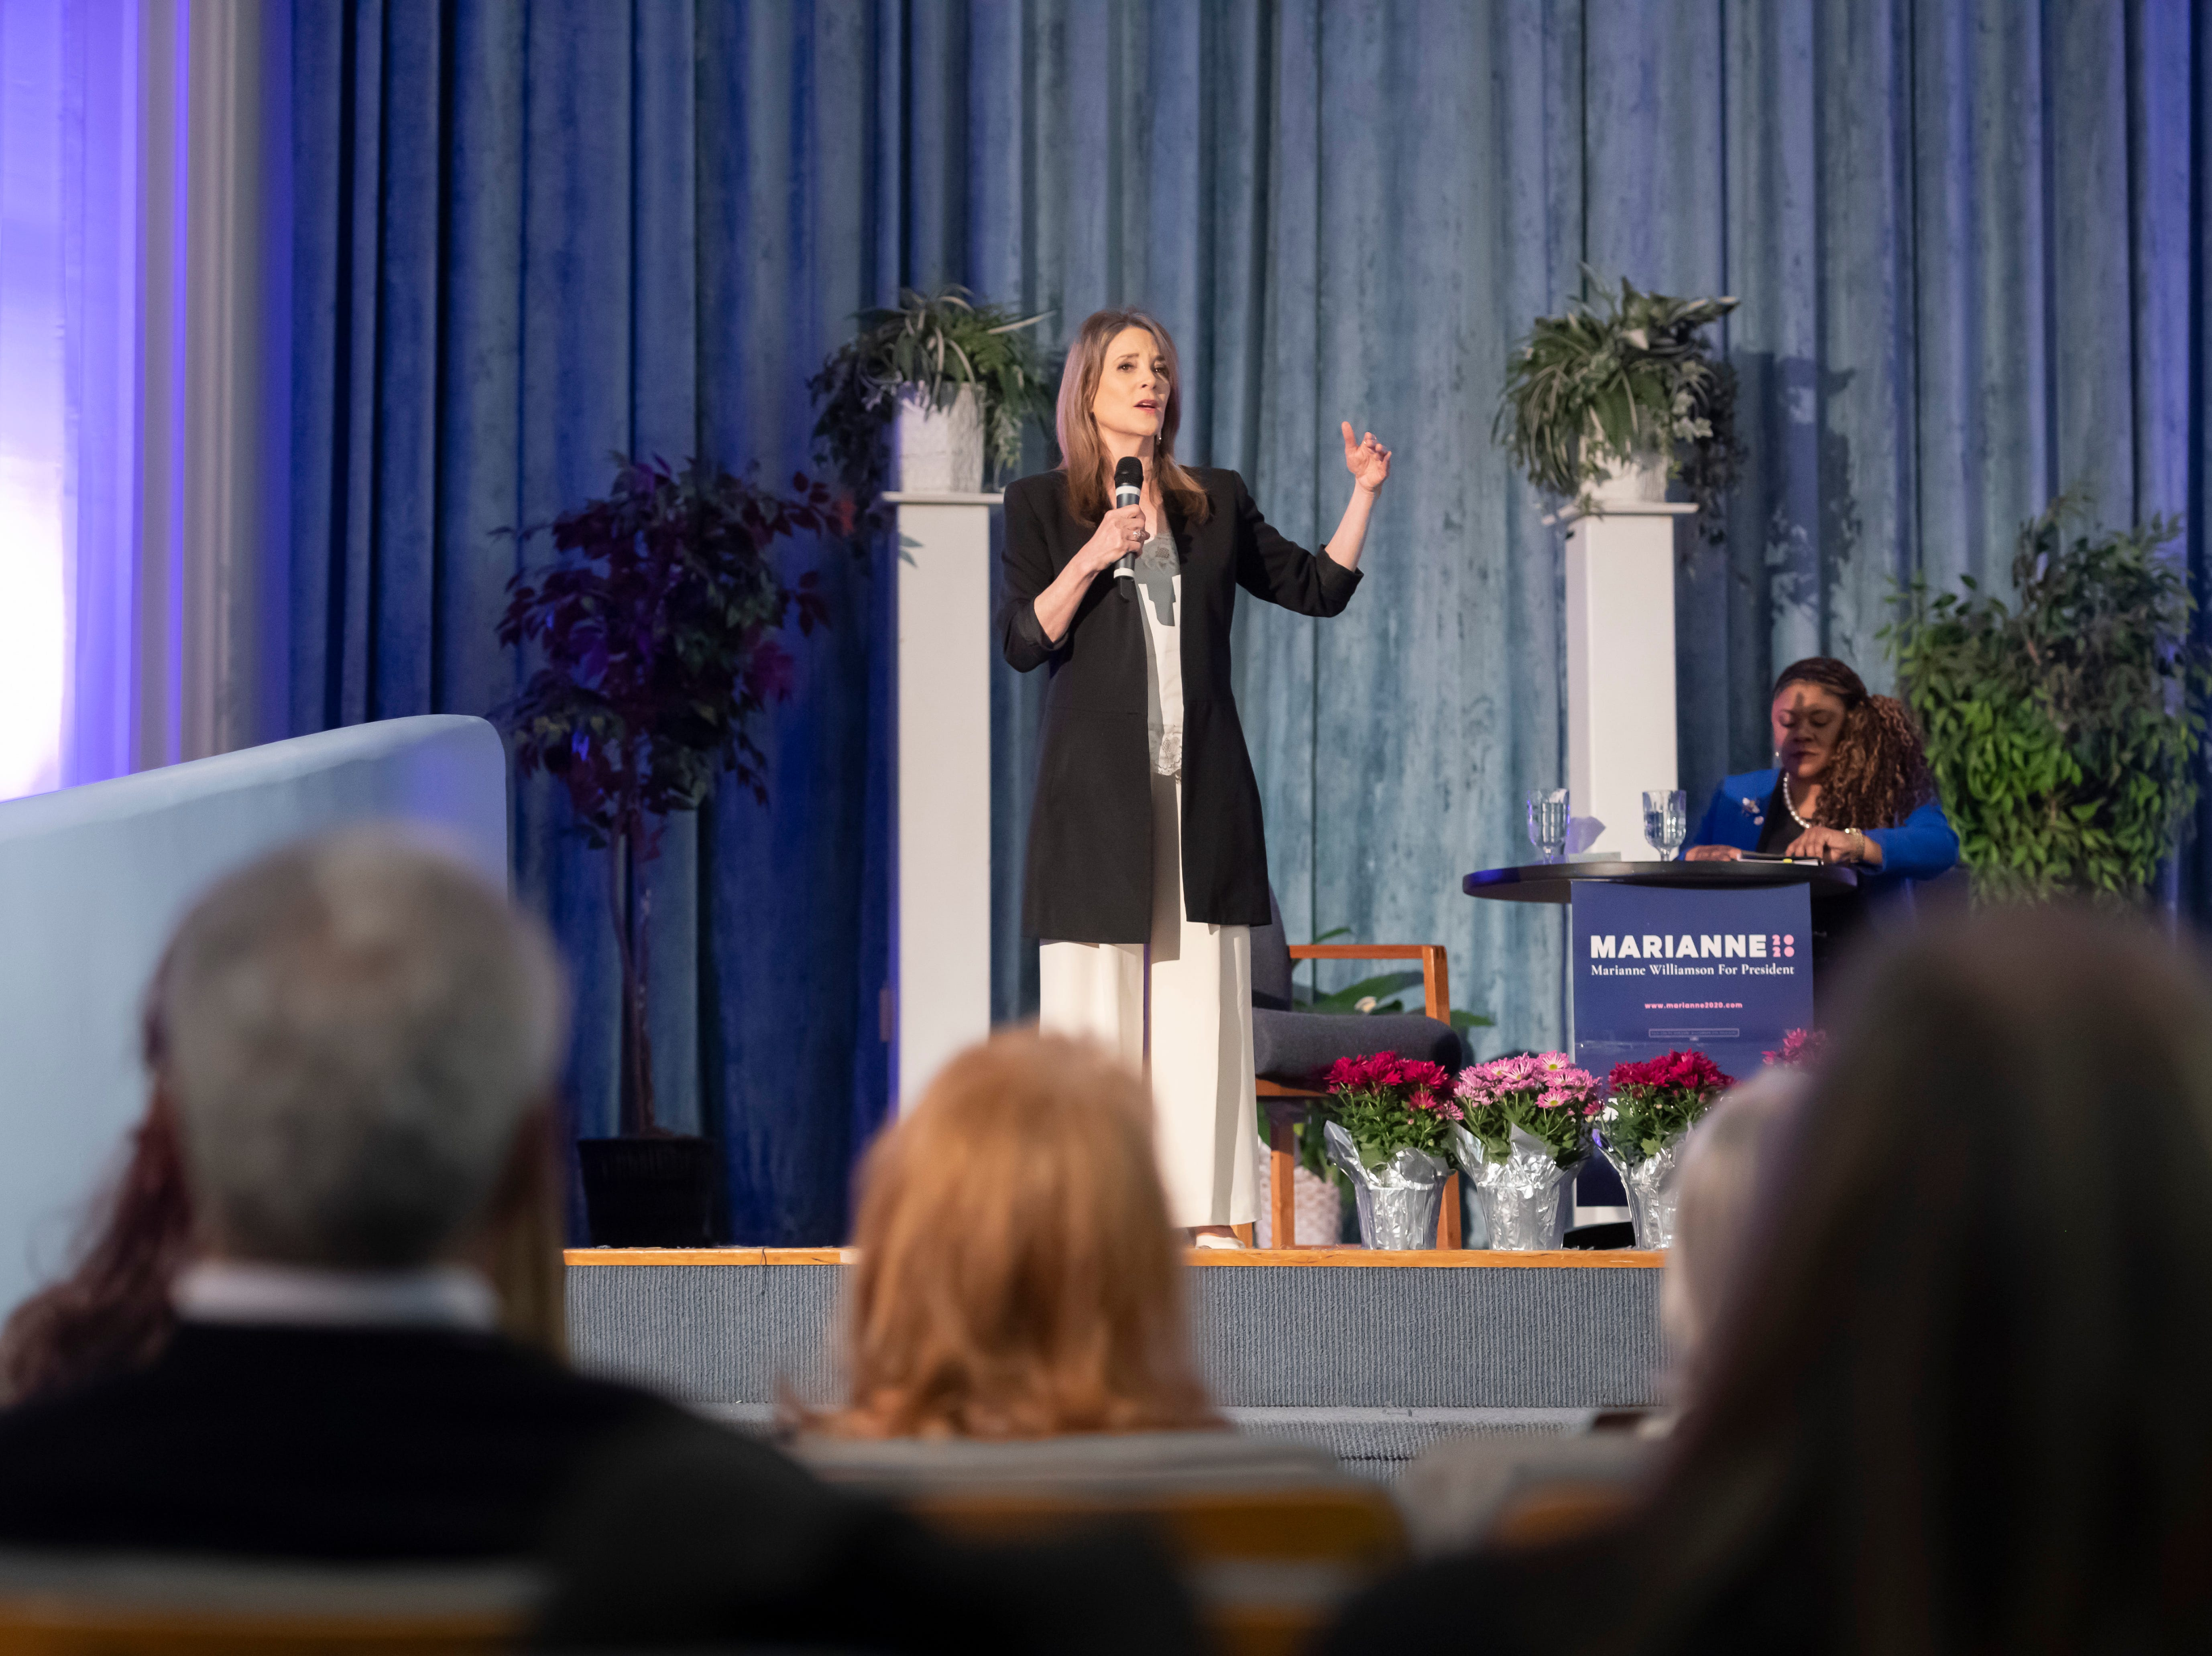 Author and Presidential candidate Marianne Williamson speaks at a town hall at the Detroit Unity Temple.